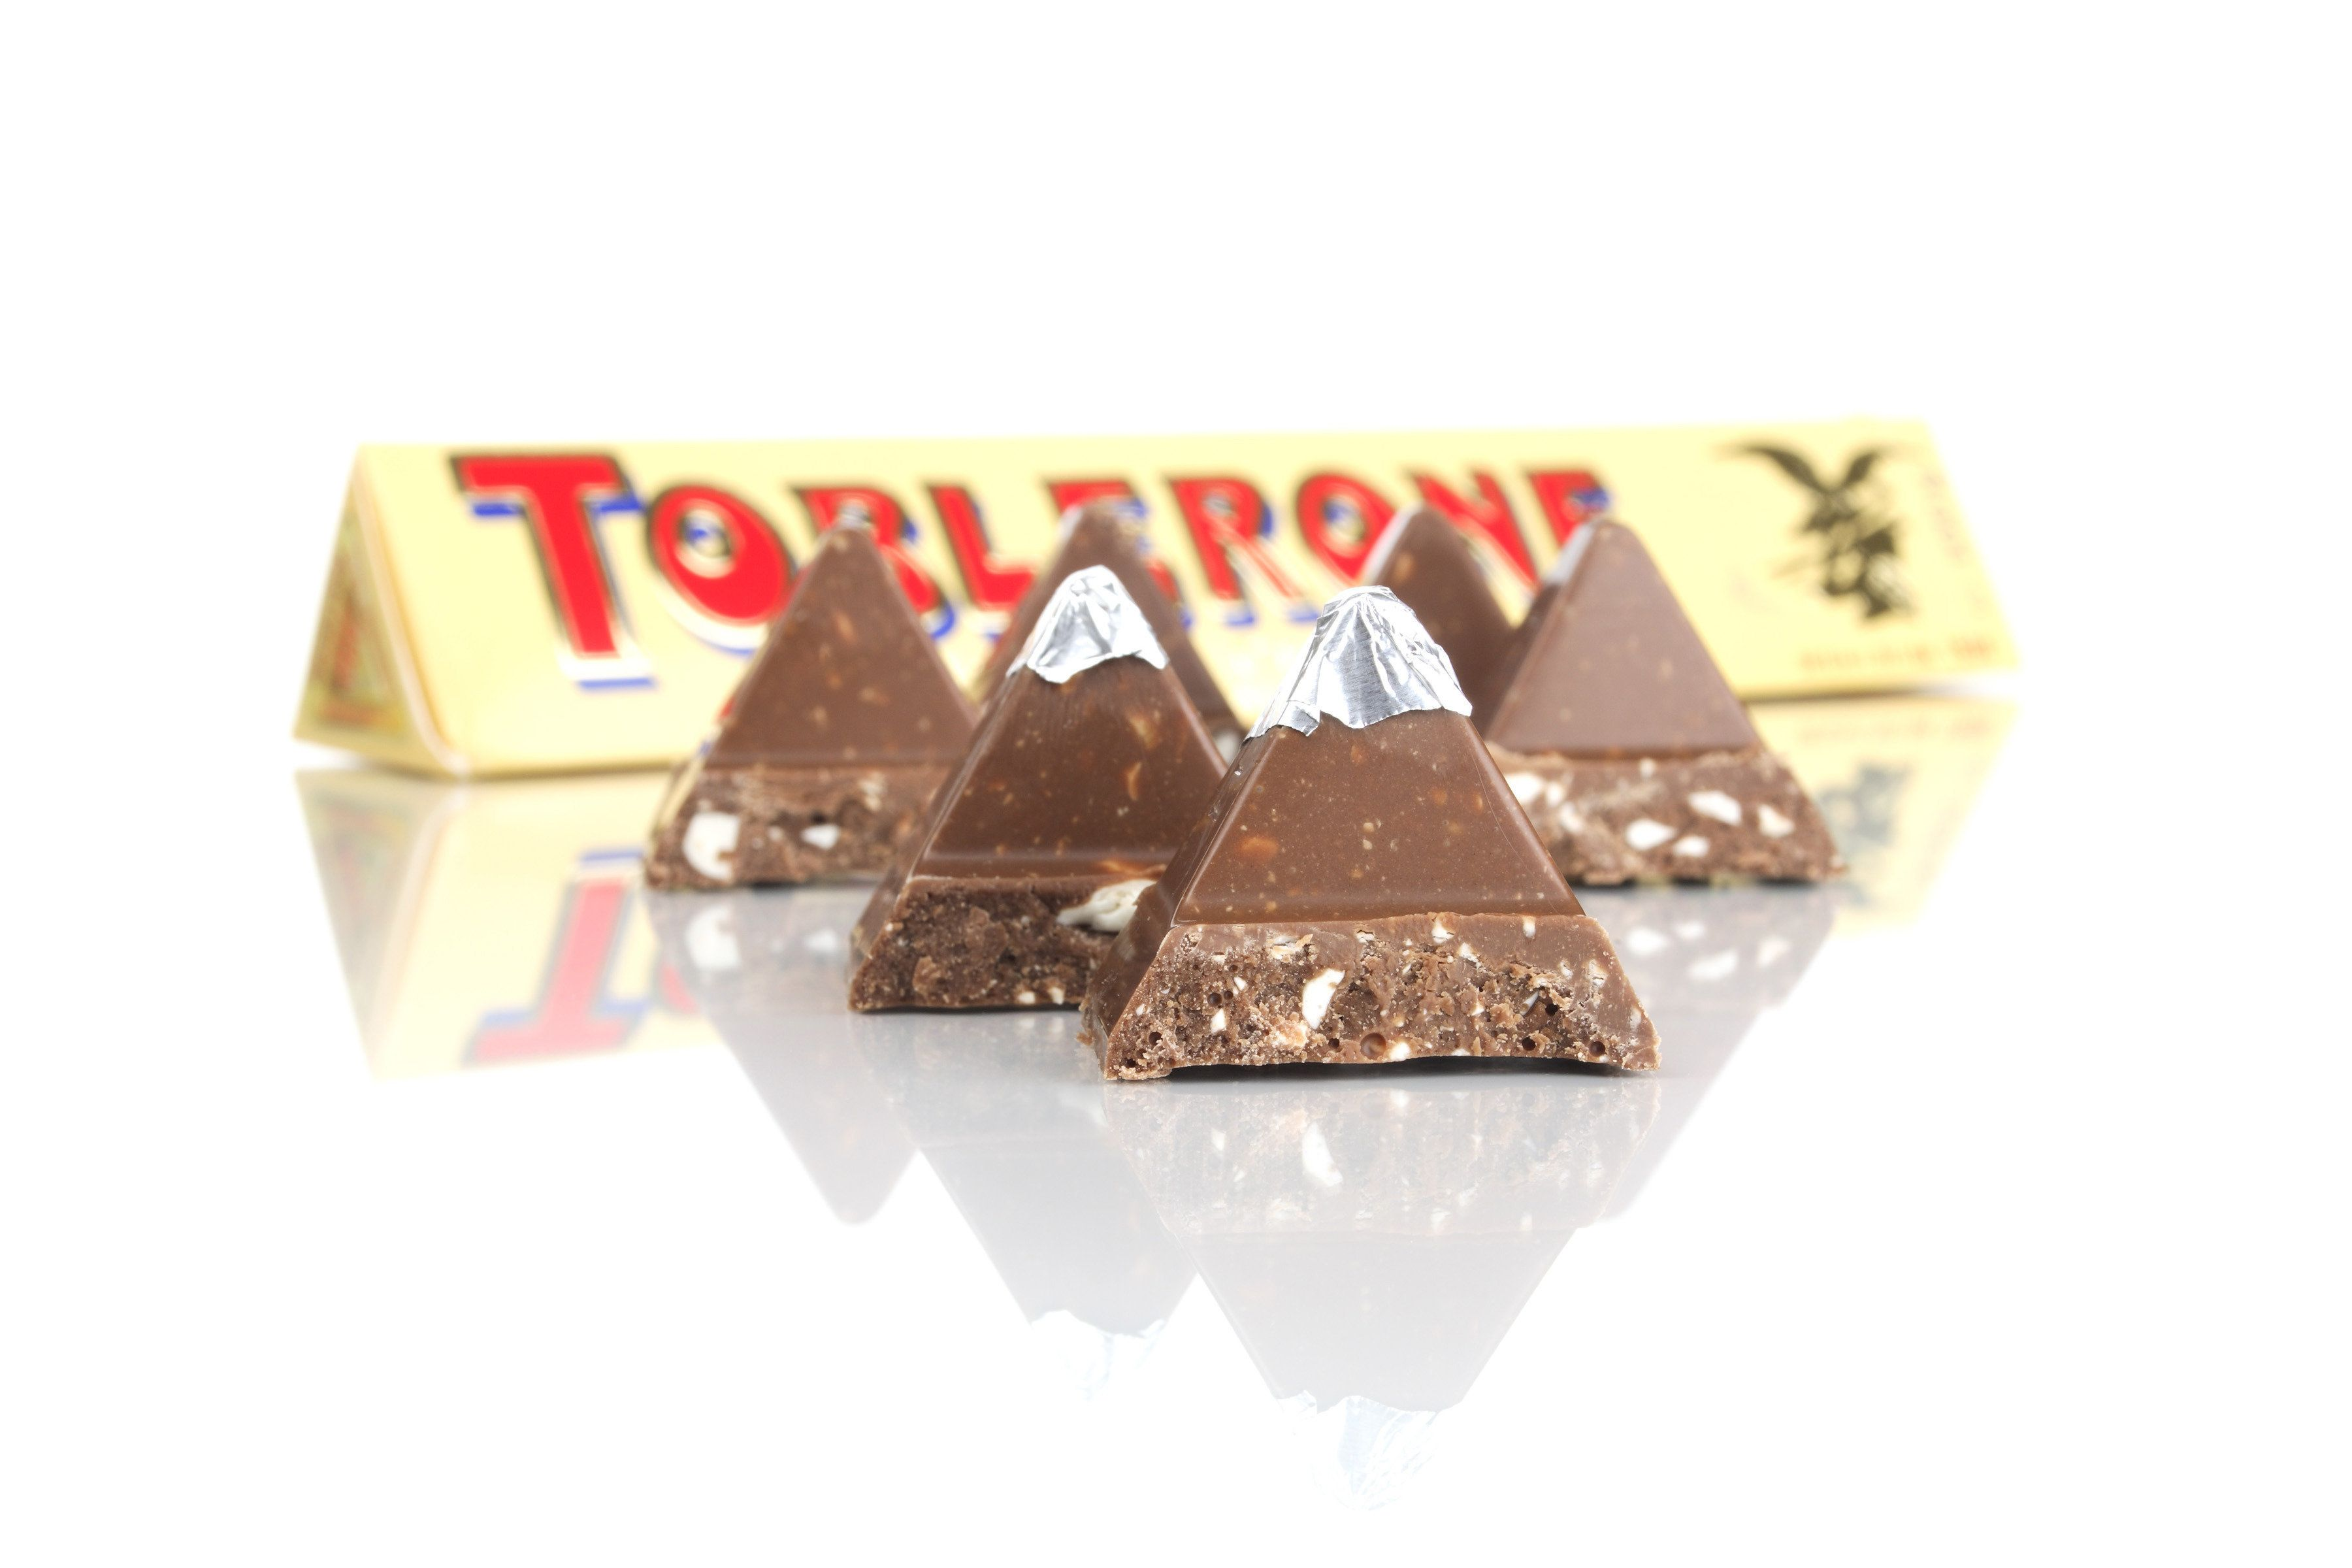 Chocolate Lovers Aren't Sweet On Toblerone's Triangle